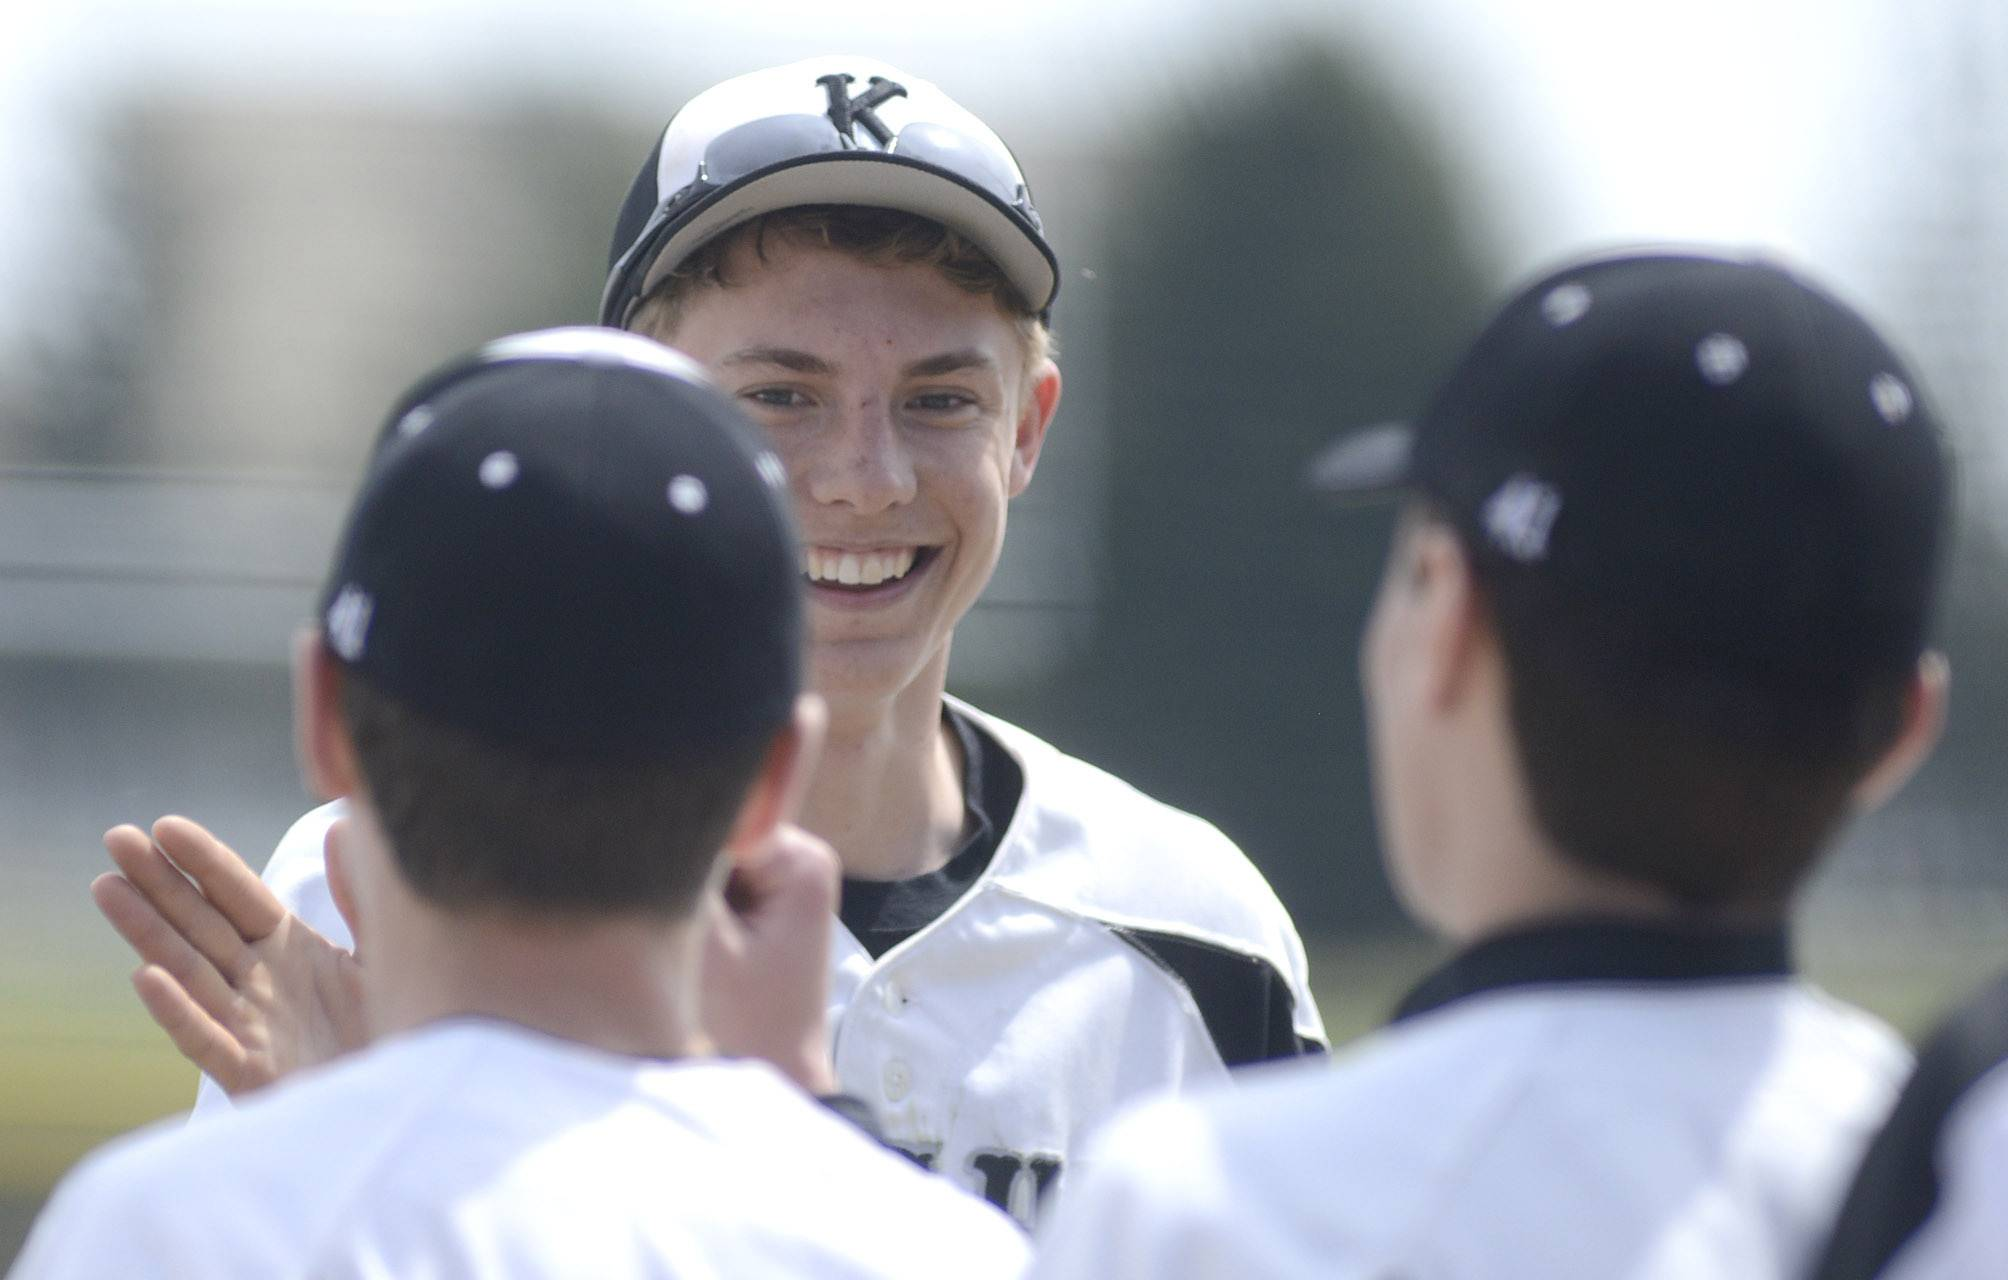 Kaneland's Nick Stratman is congratulated by teammates as he returns to the dugout after catching the final out in the top of the ninth inning.